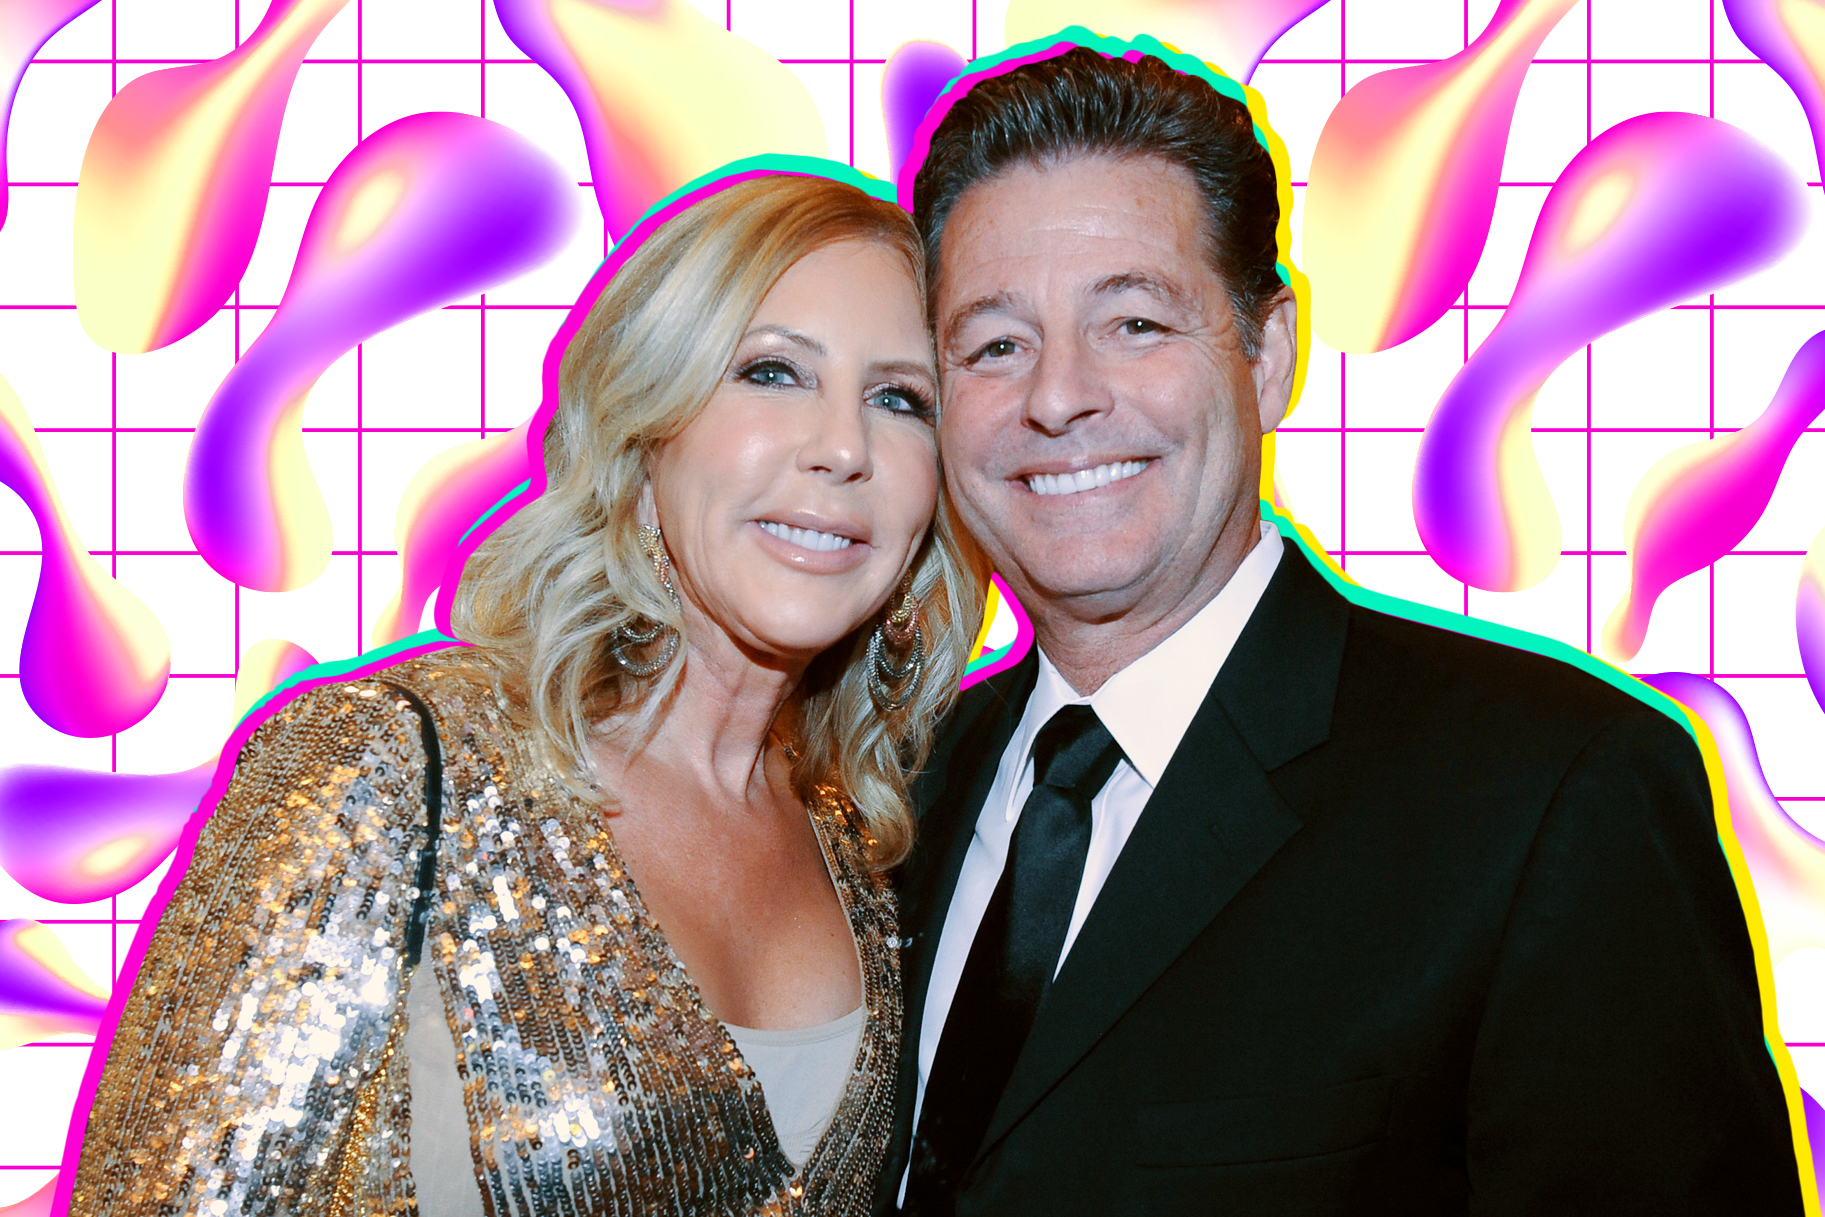 Whoa, Vicki Gunvalson and Steve Lodge Are in the Midst of a Major Renovation